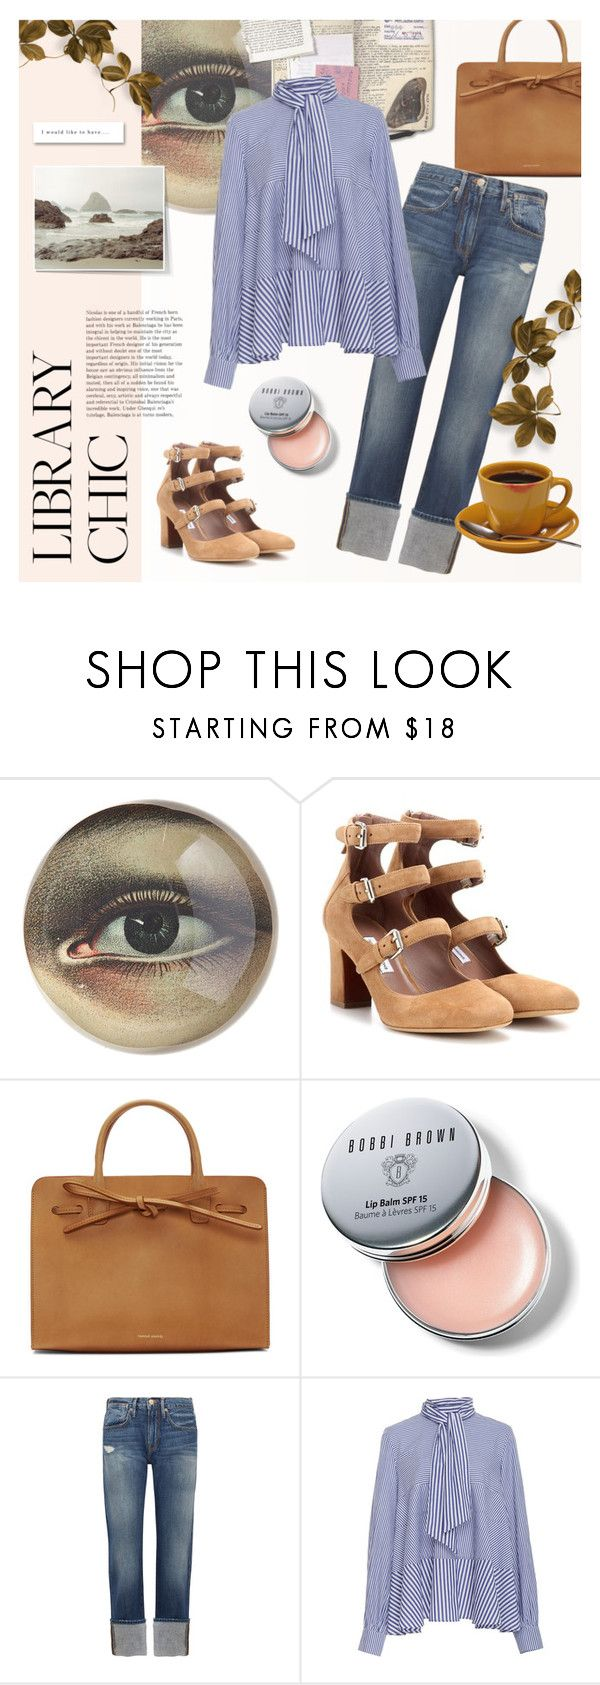 """""""Library Chic"""" by kouyouzi ❤ liked on Polyvore featuring John Derian, Tabitha Simmons, Mansur Gavriel, Bobbi Brown Cosmetics, Frame, Yves Saint Laurent, Tanya Taylor and vintage"""